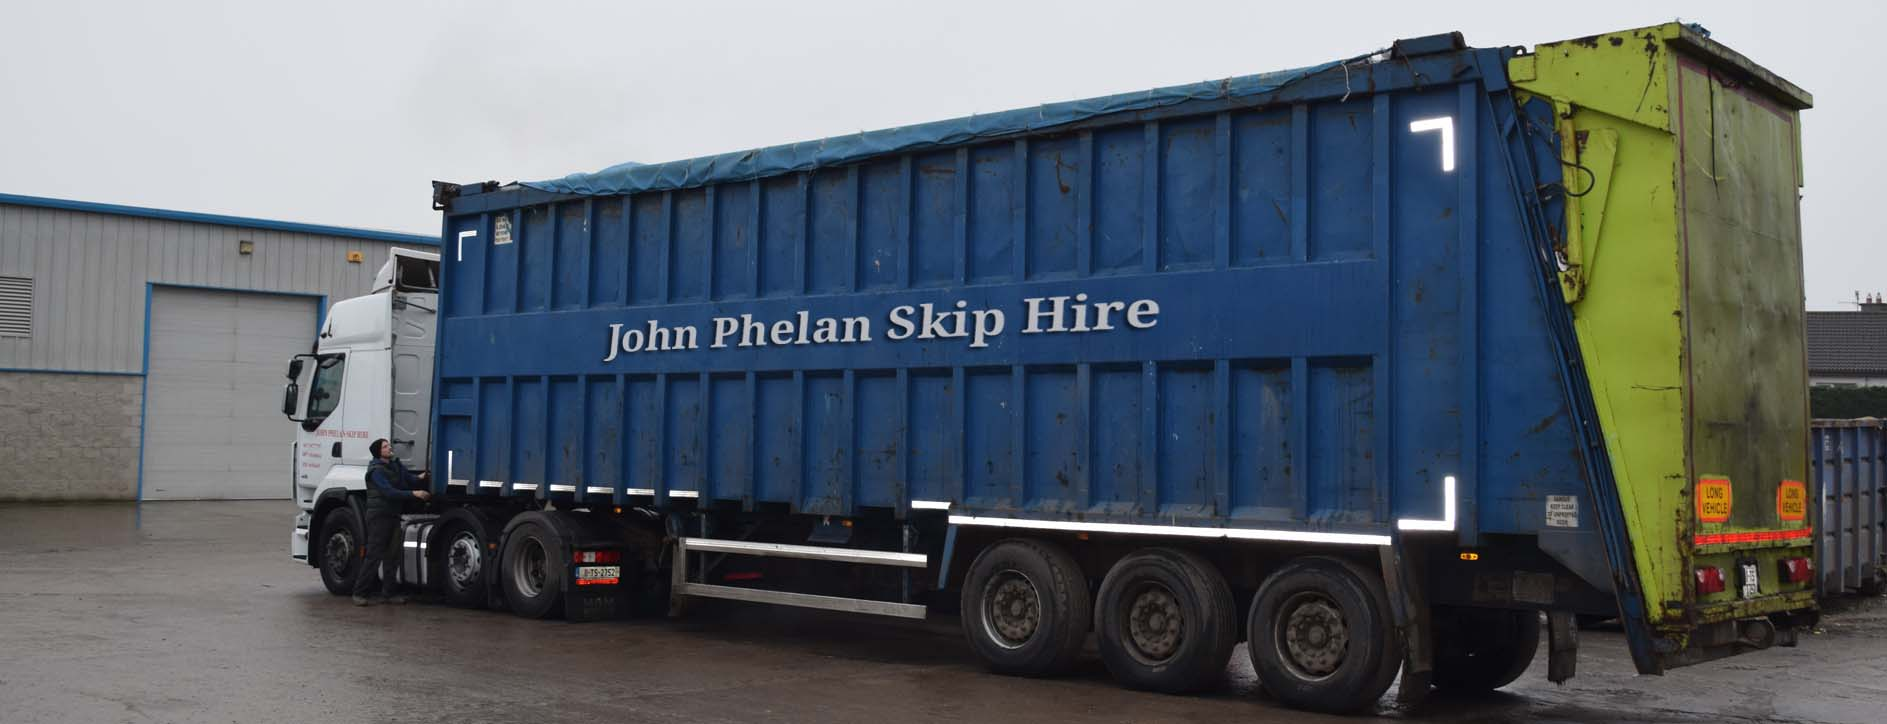 skip hire ireland slider image 5